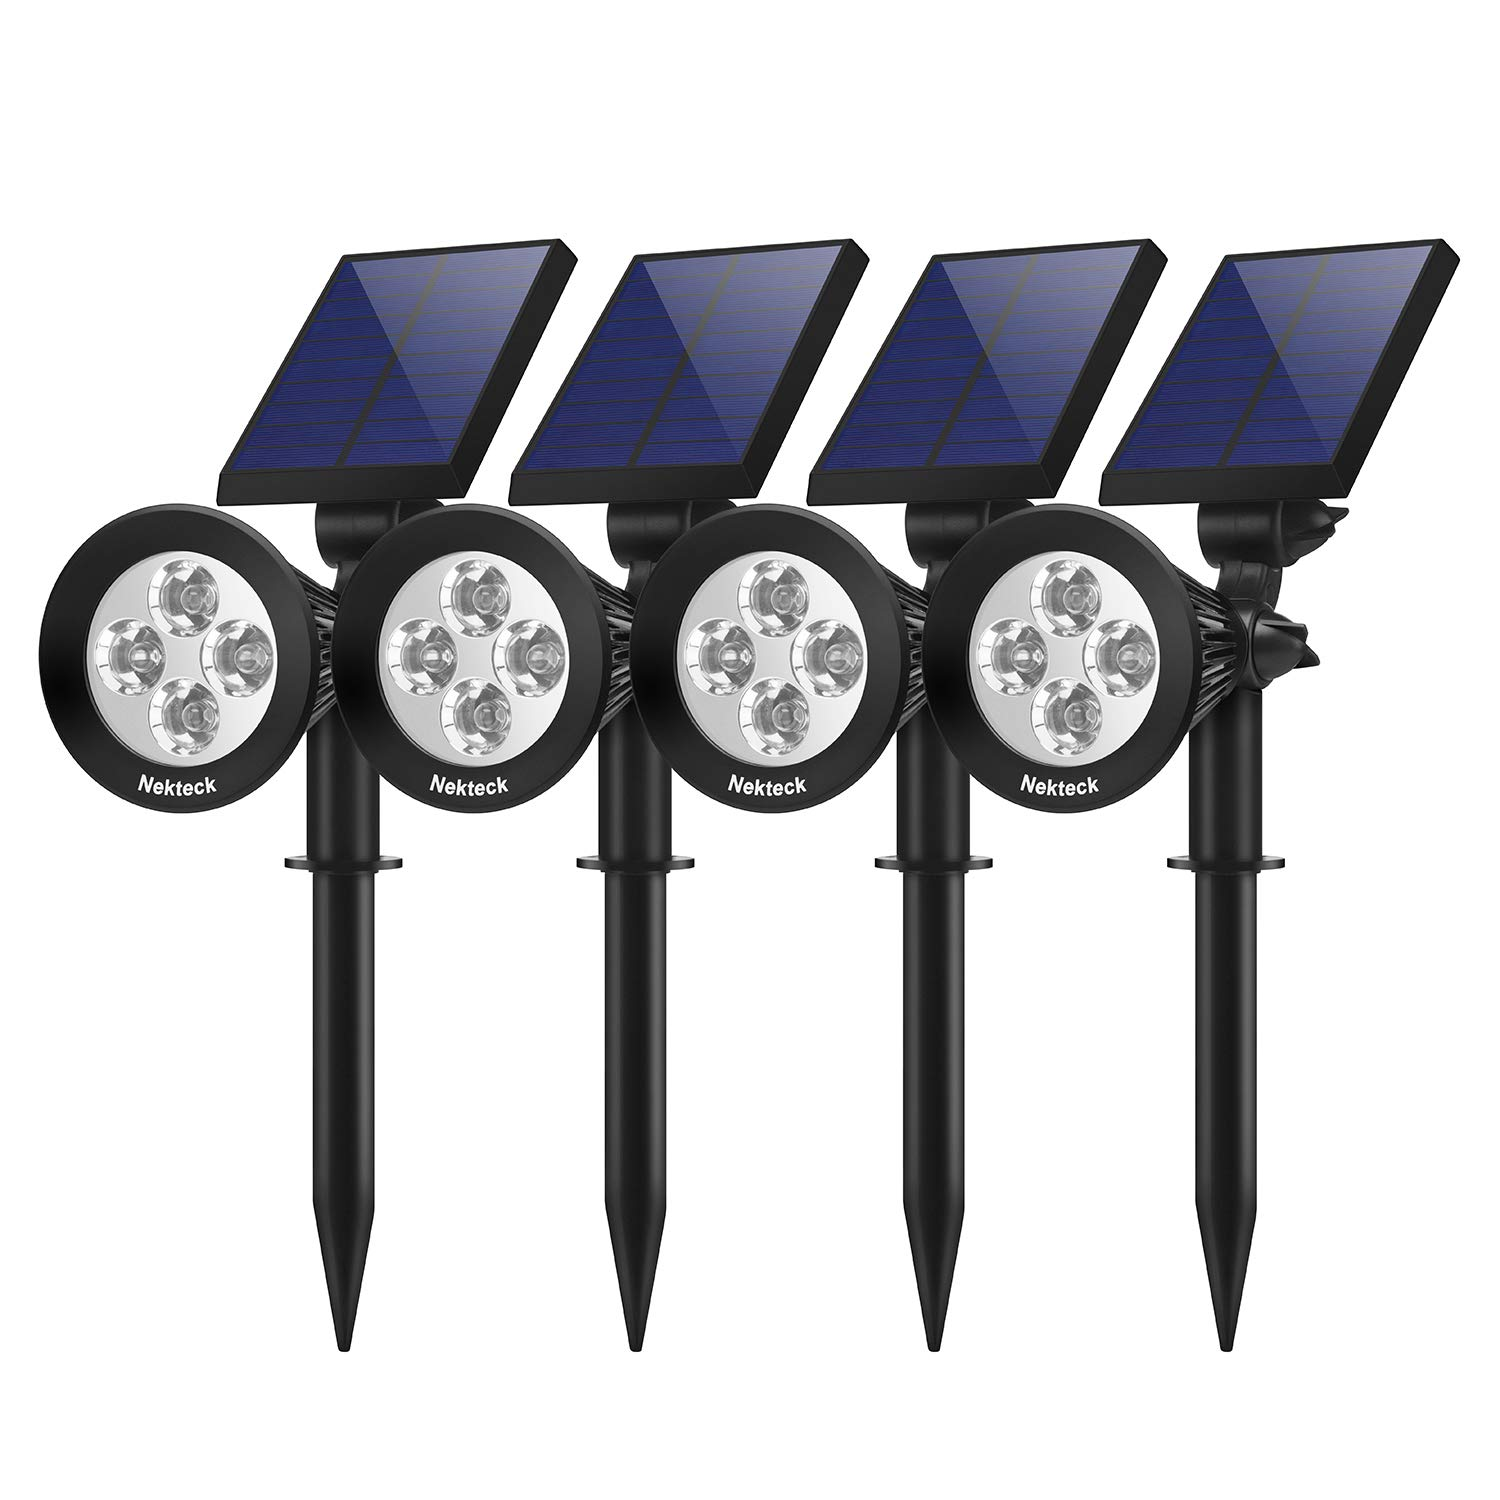 Nekteck Solar Lights Outdoor, 2-in-1 Solar Pathway Spotlights Powered 4 LED Adjustable Wall Light Landscape Lighting, Bright and Dark Sensing, Auto On/Off for Flag Pole, Yard, Figurine